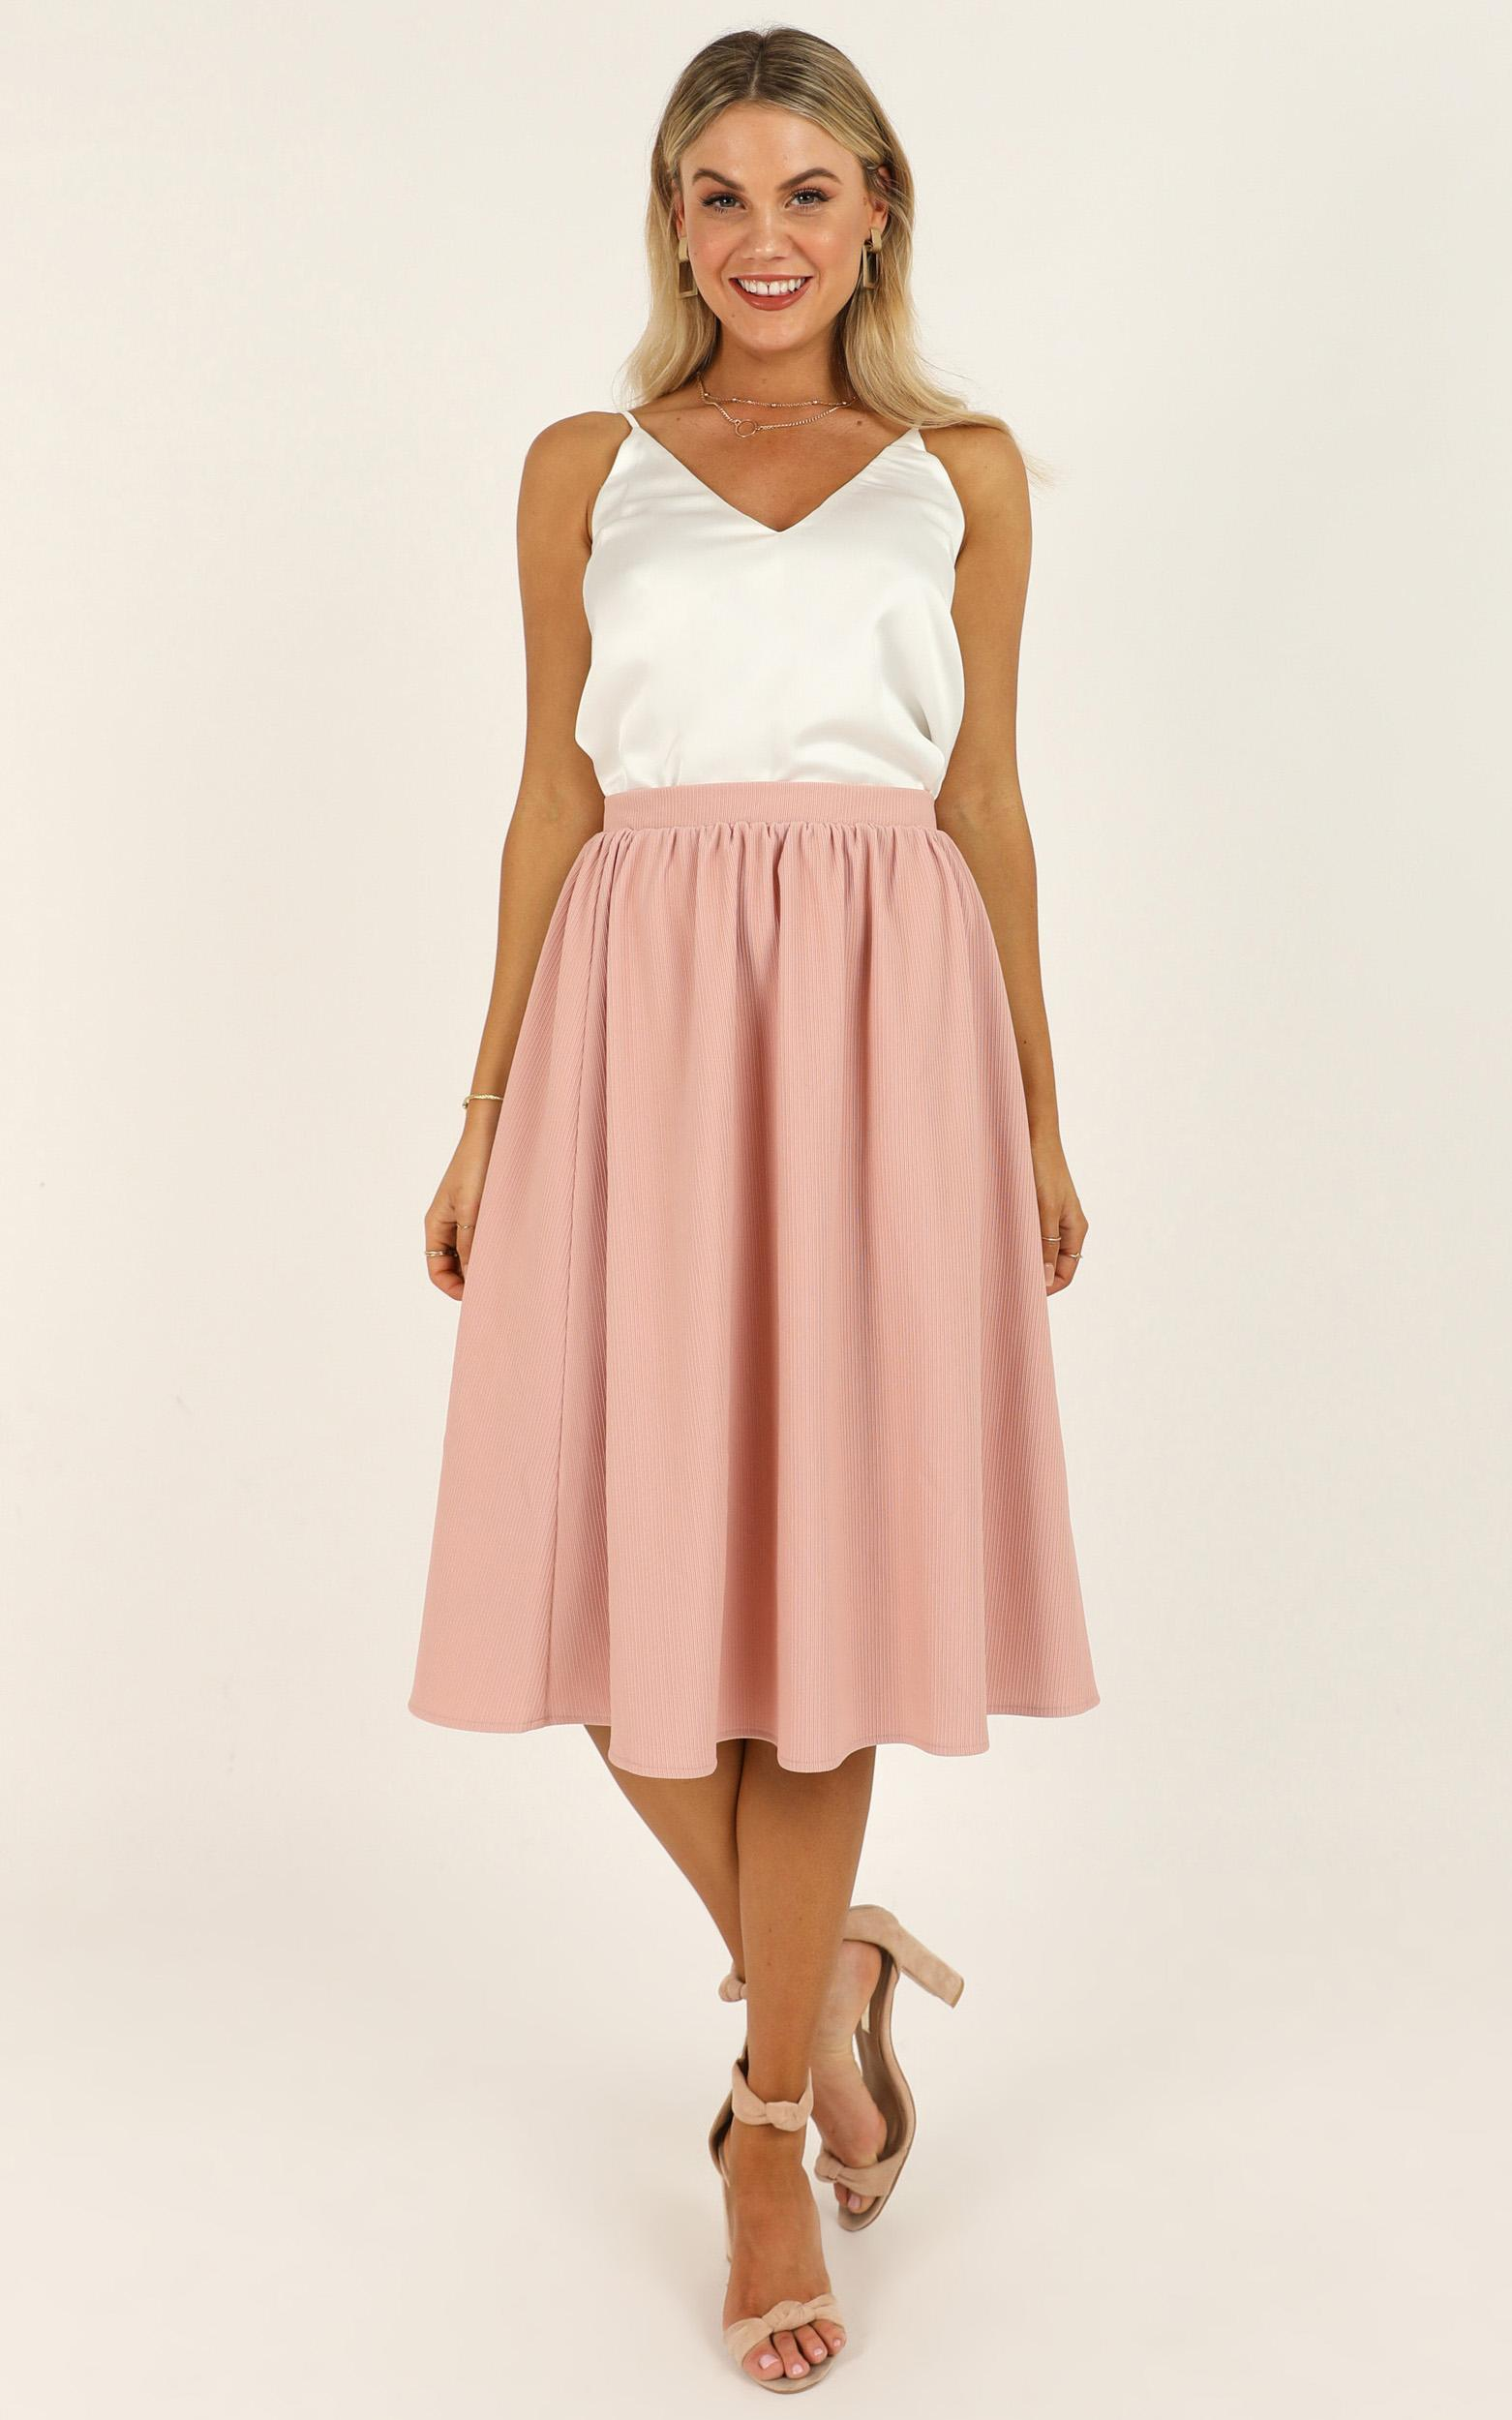 Change Of Pace Skirt in blush - 20 (XXXXL), Blush, hi-res image number null